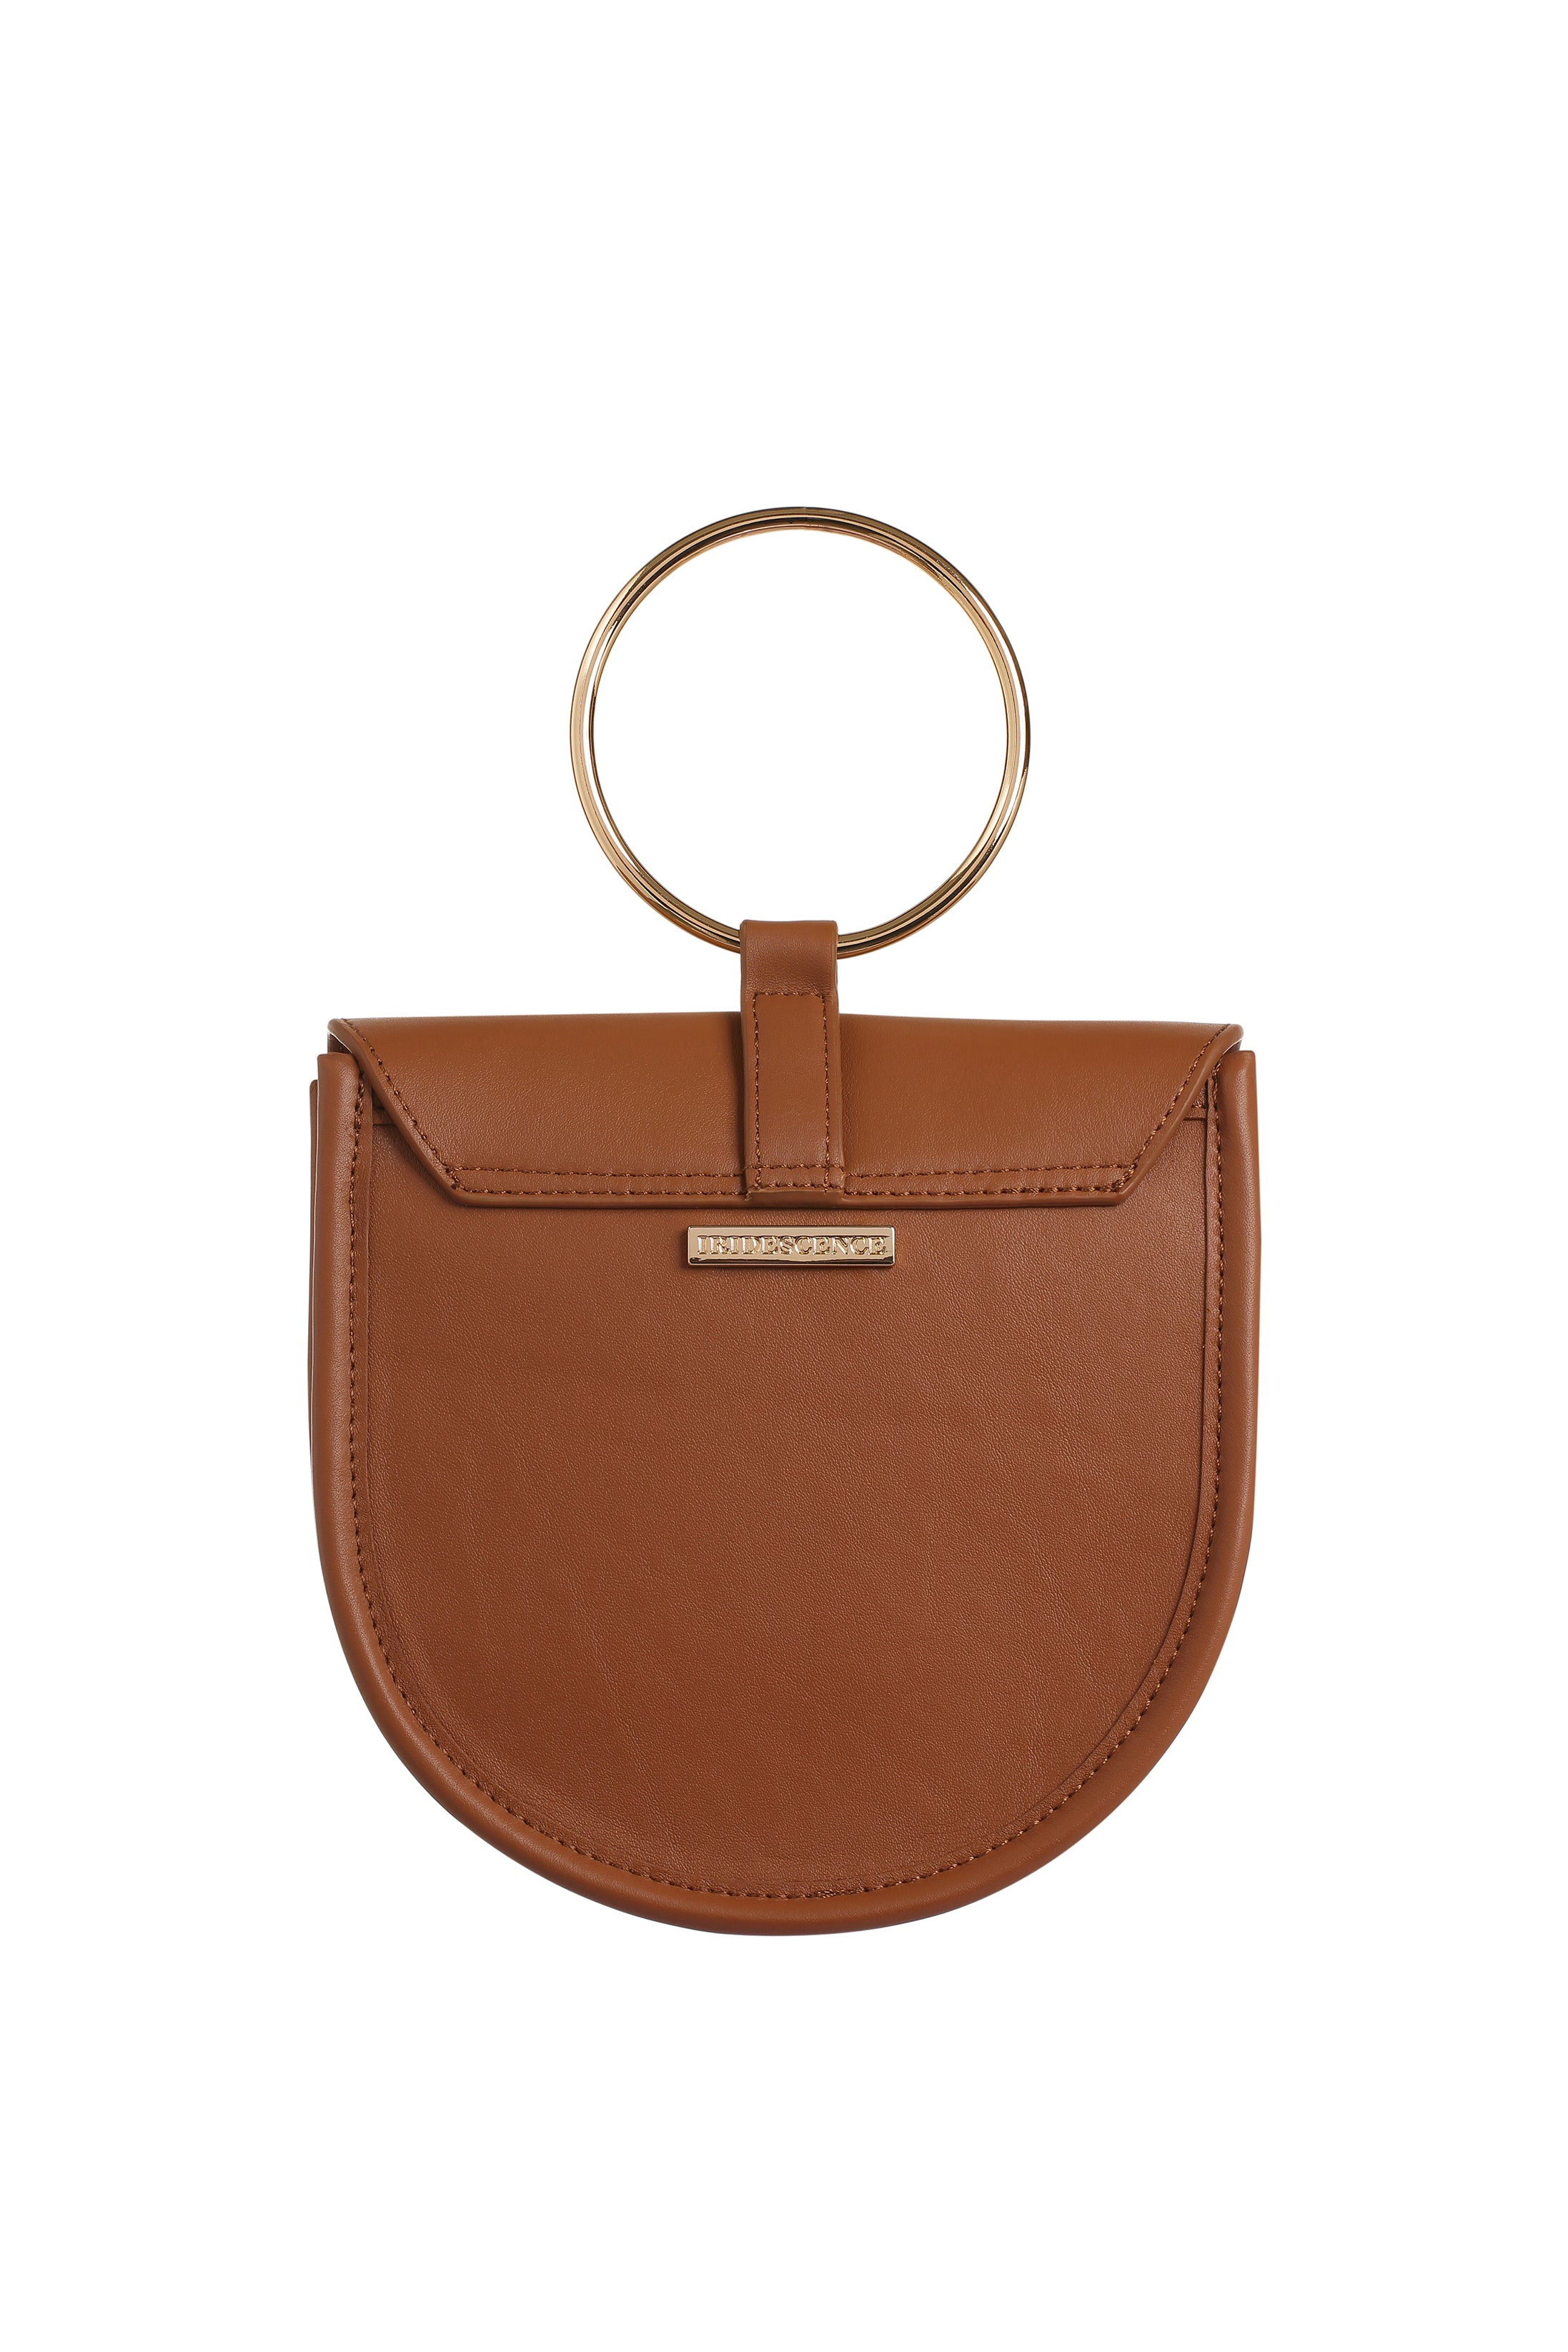 O-Ring Caramel Leather Handbag